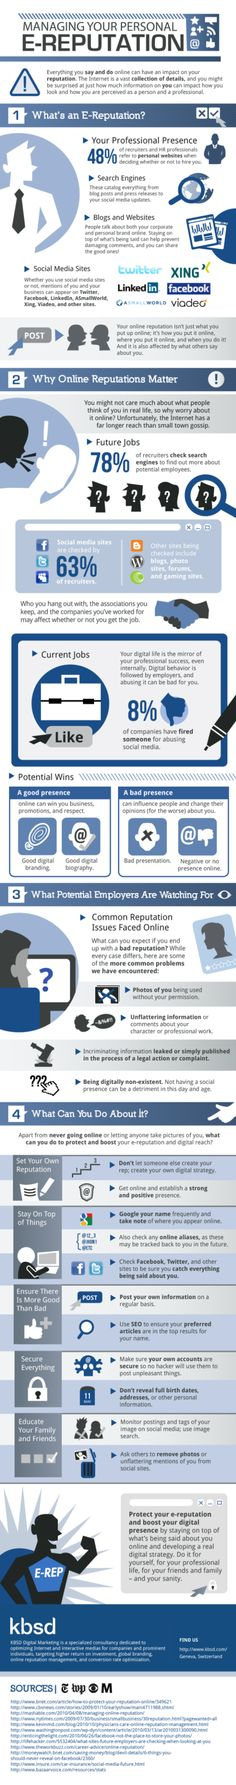 Managing your personal e-reputation. #infographic